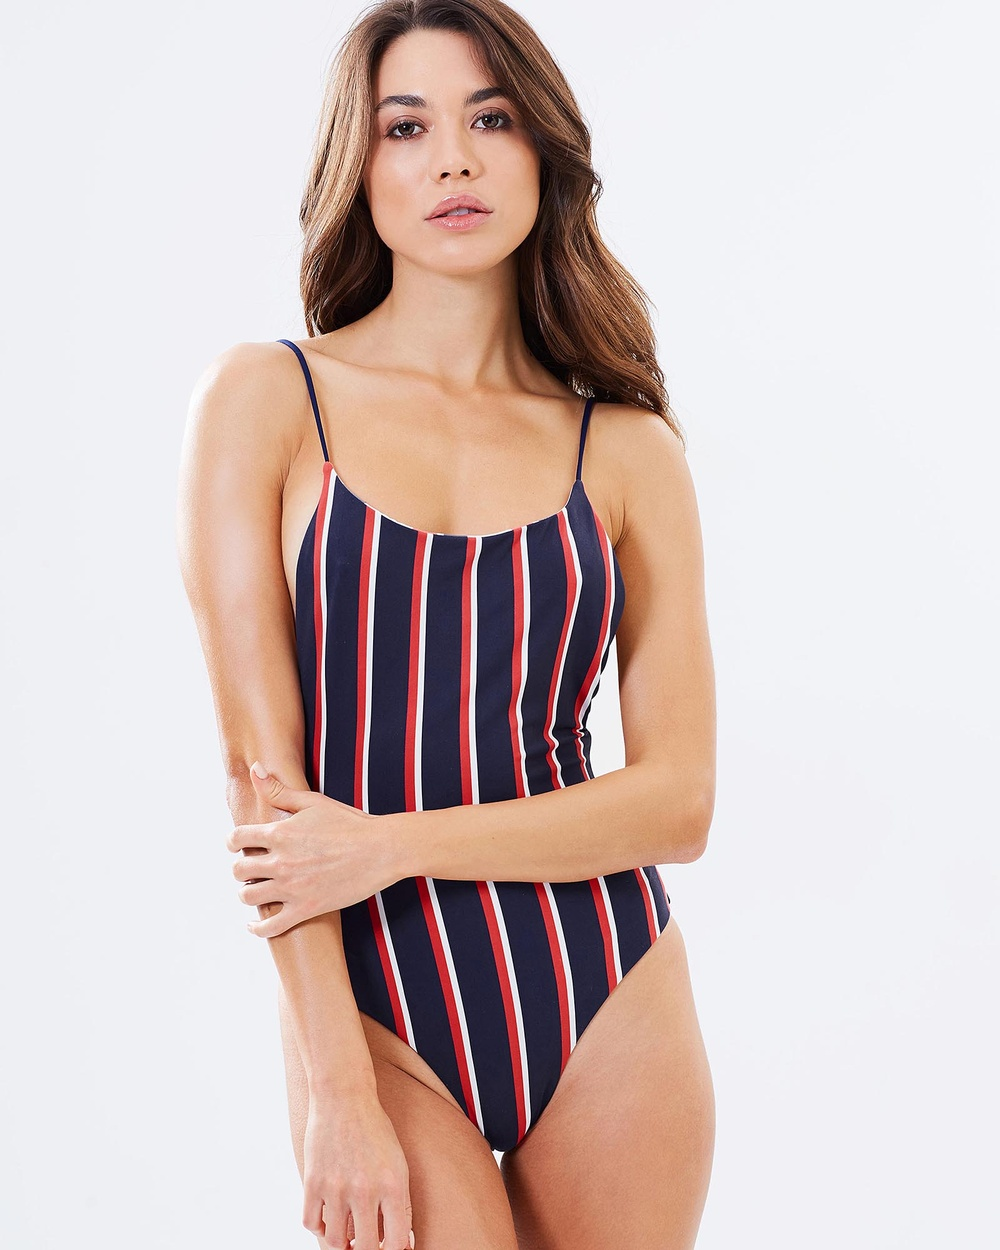 Bond-Eye Swimwear Sunday Session Reversible One Piece One-Piece / Swimsuit Varsity Stripe Sunday Session Reversible One-Piece